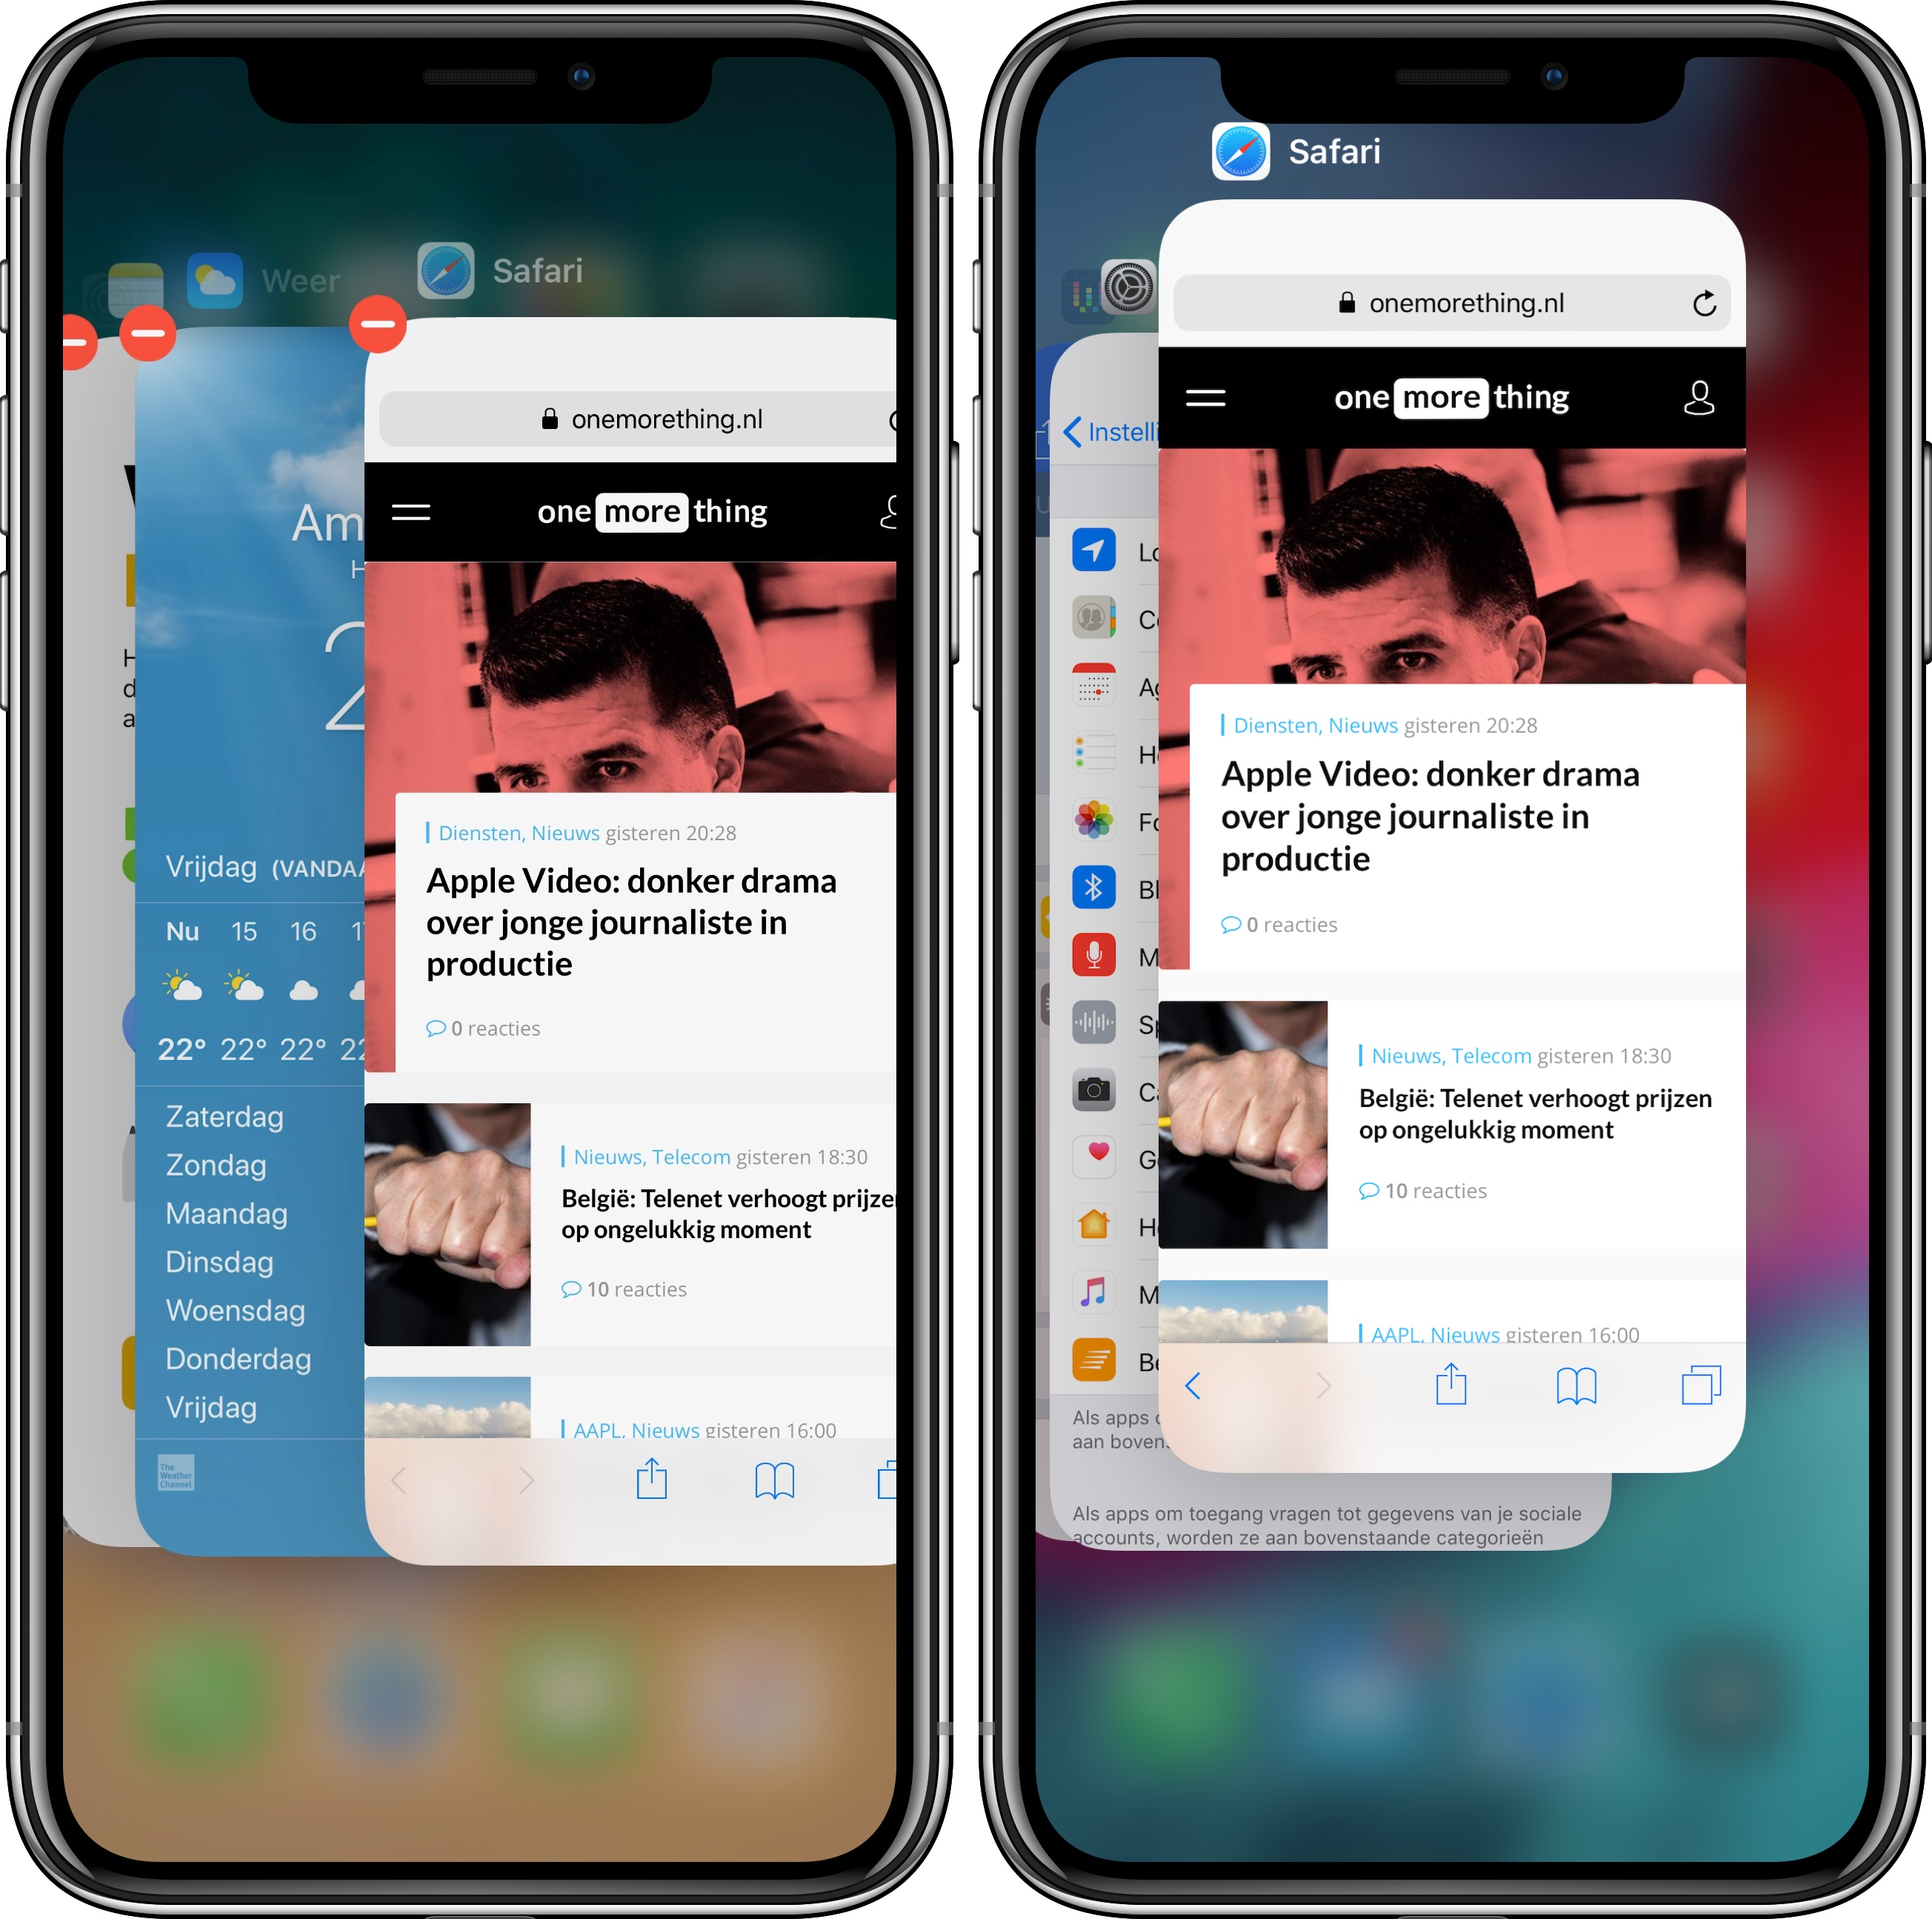 apps sluiten iPhone X iOS 11 vs iOS 12